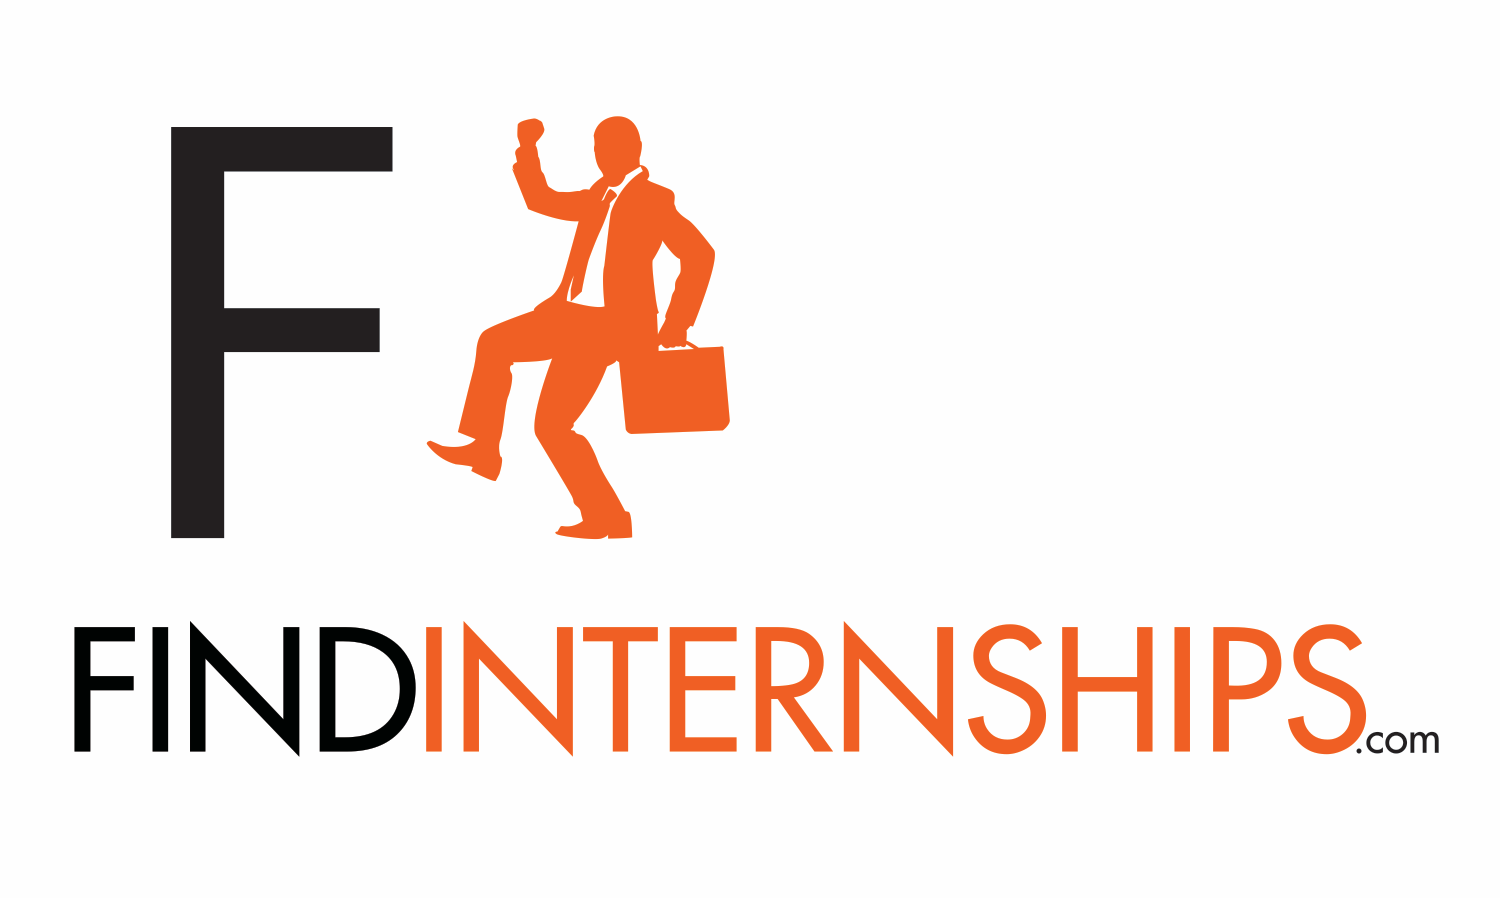 FindInternships.com - Find Internships, Student Jobs, and More